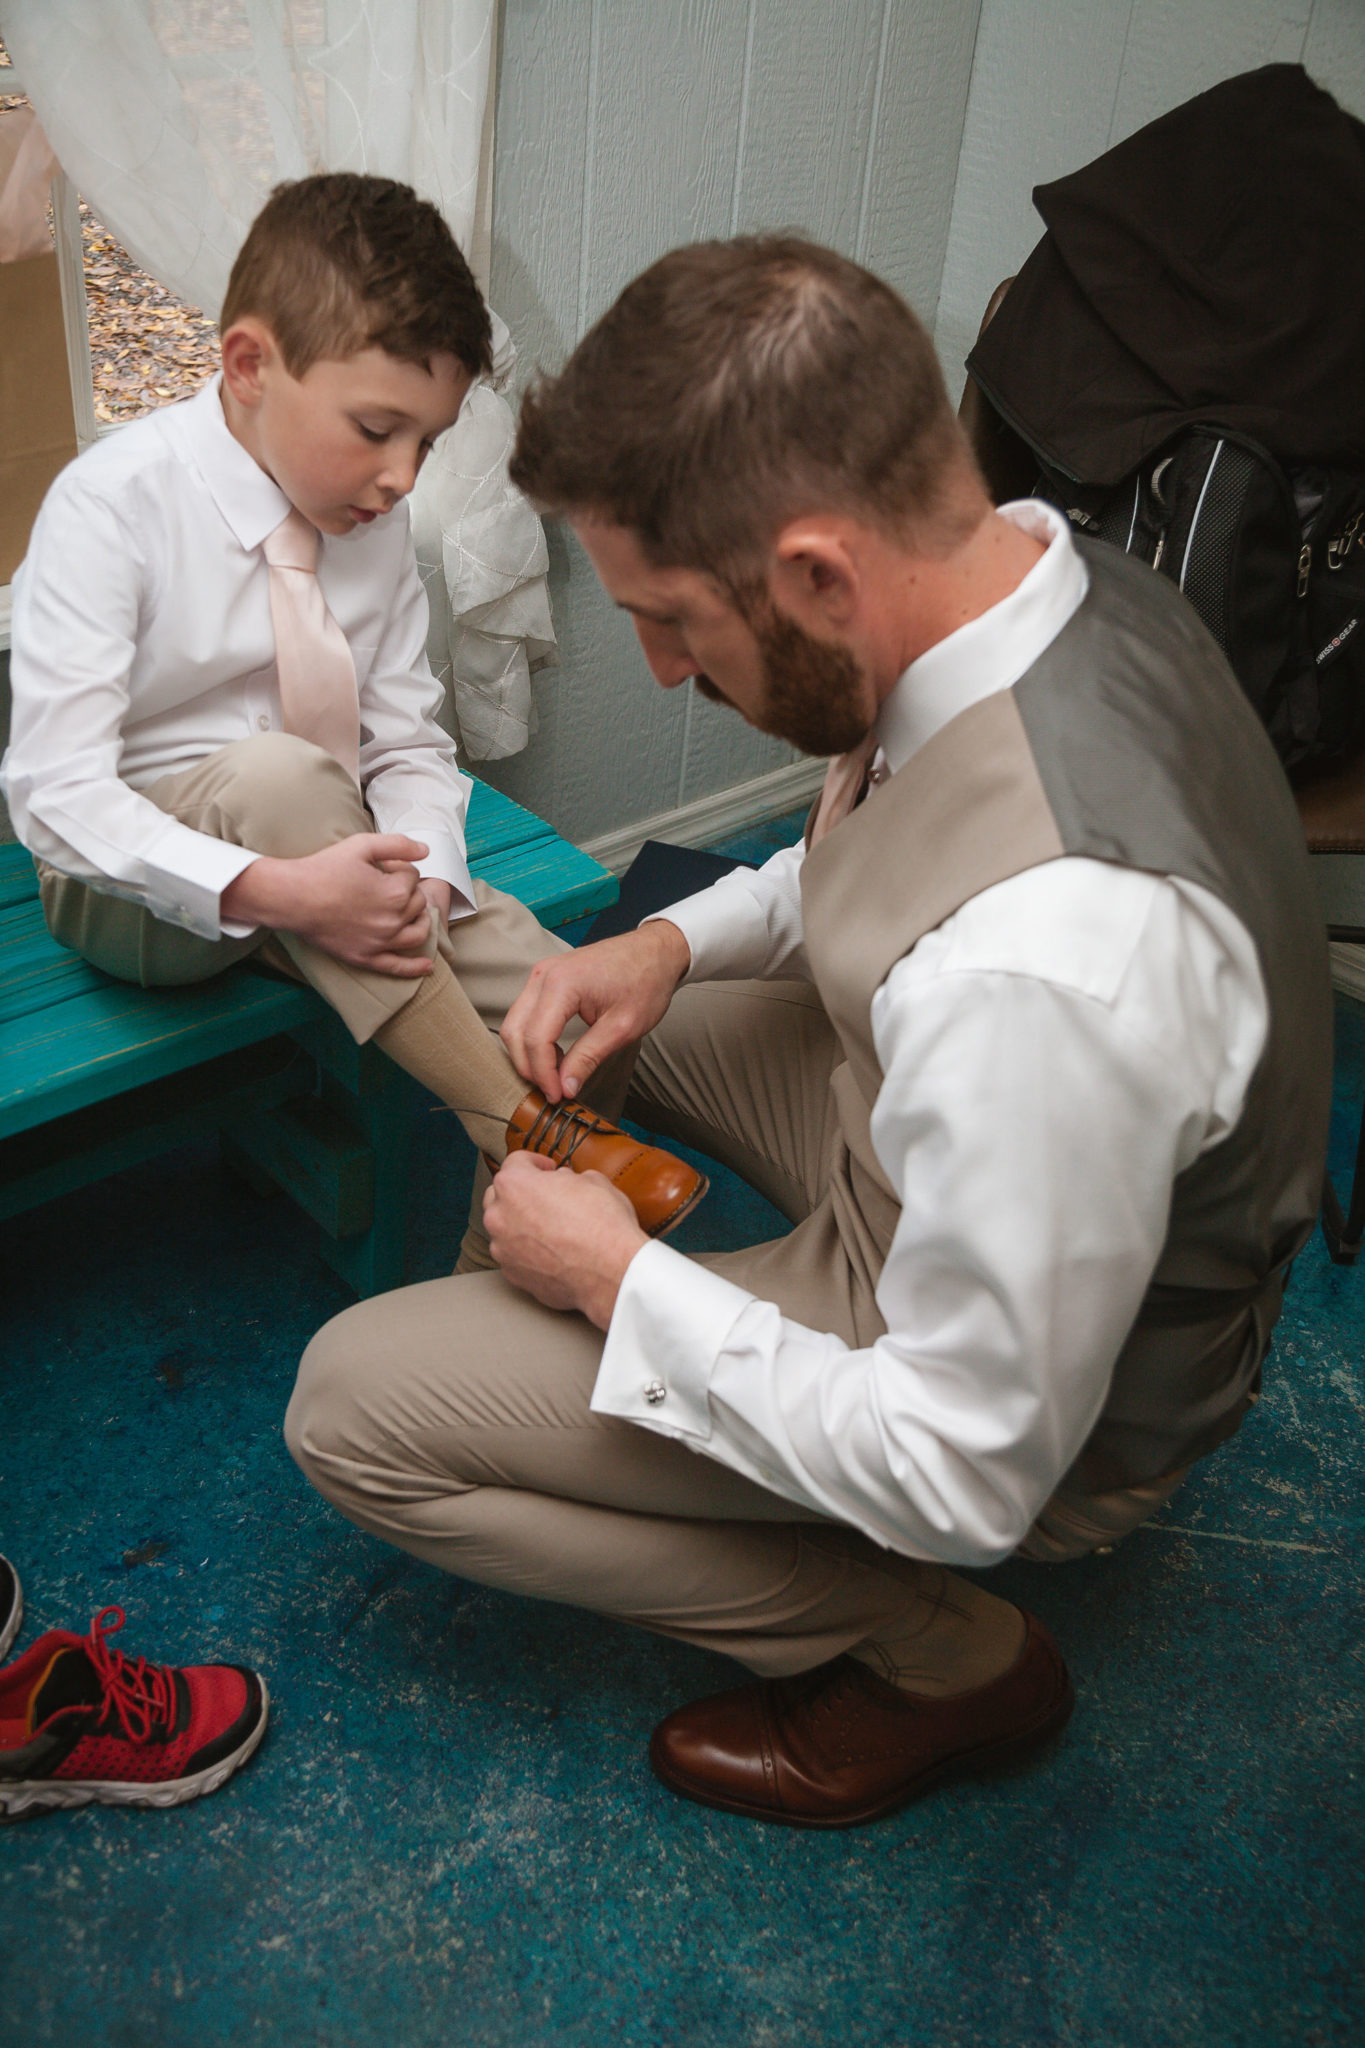 The groom and his son getting ready.